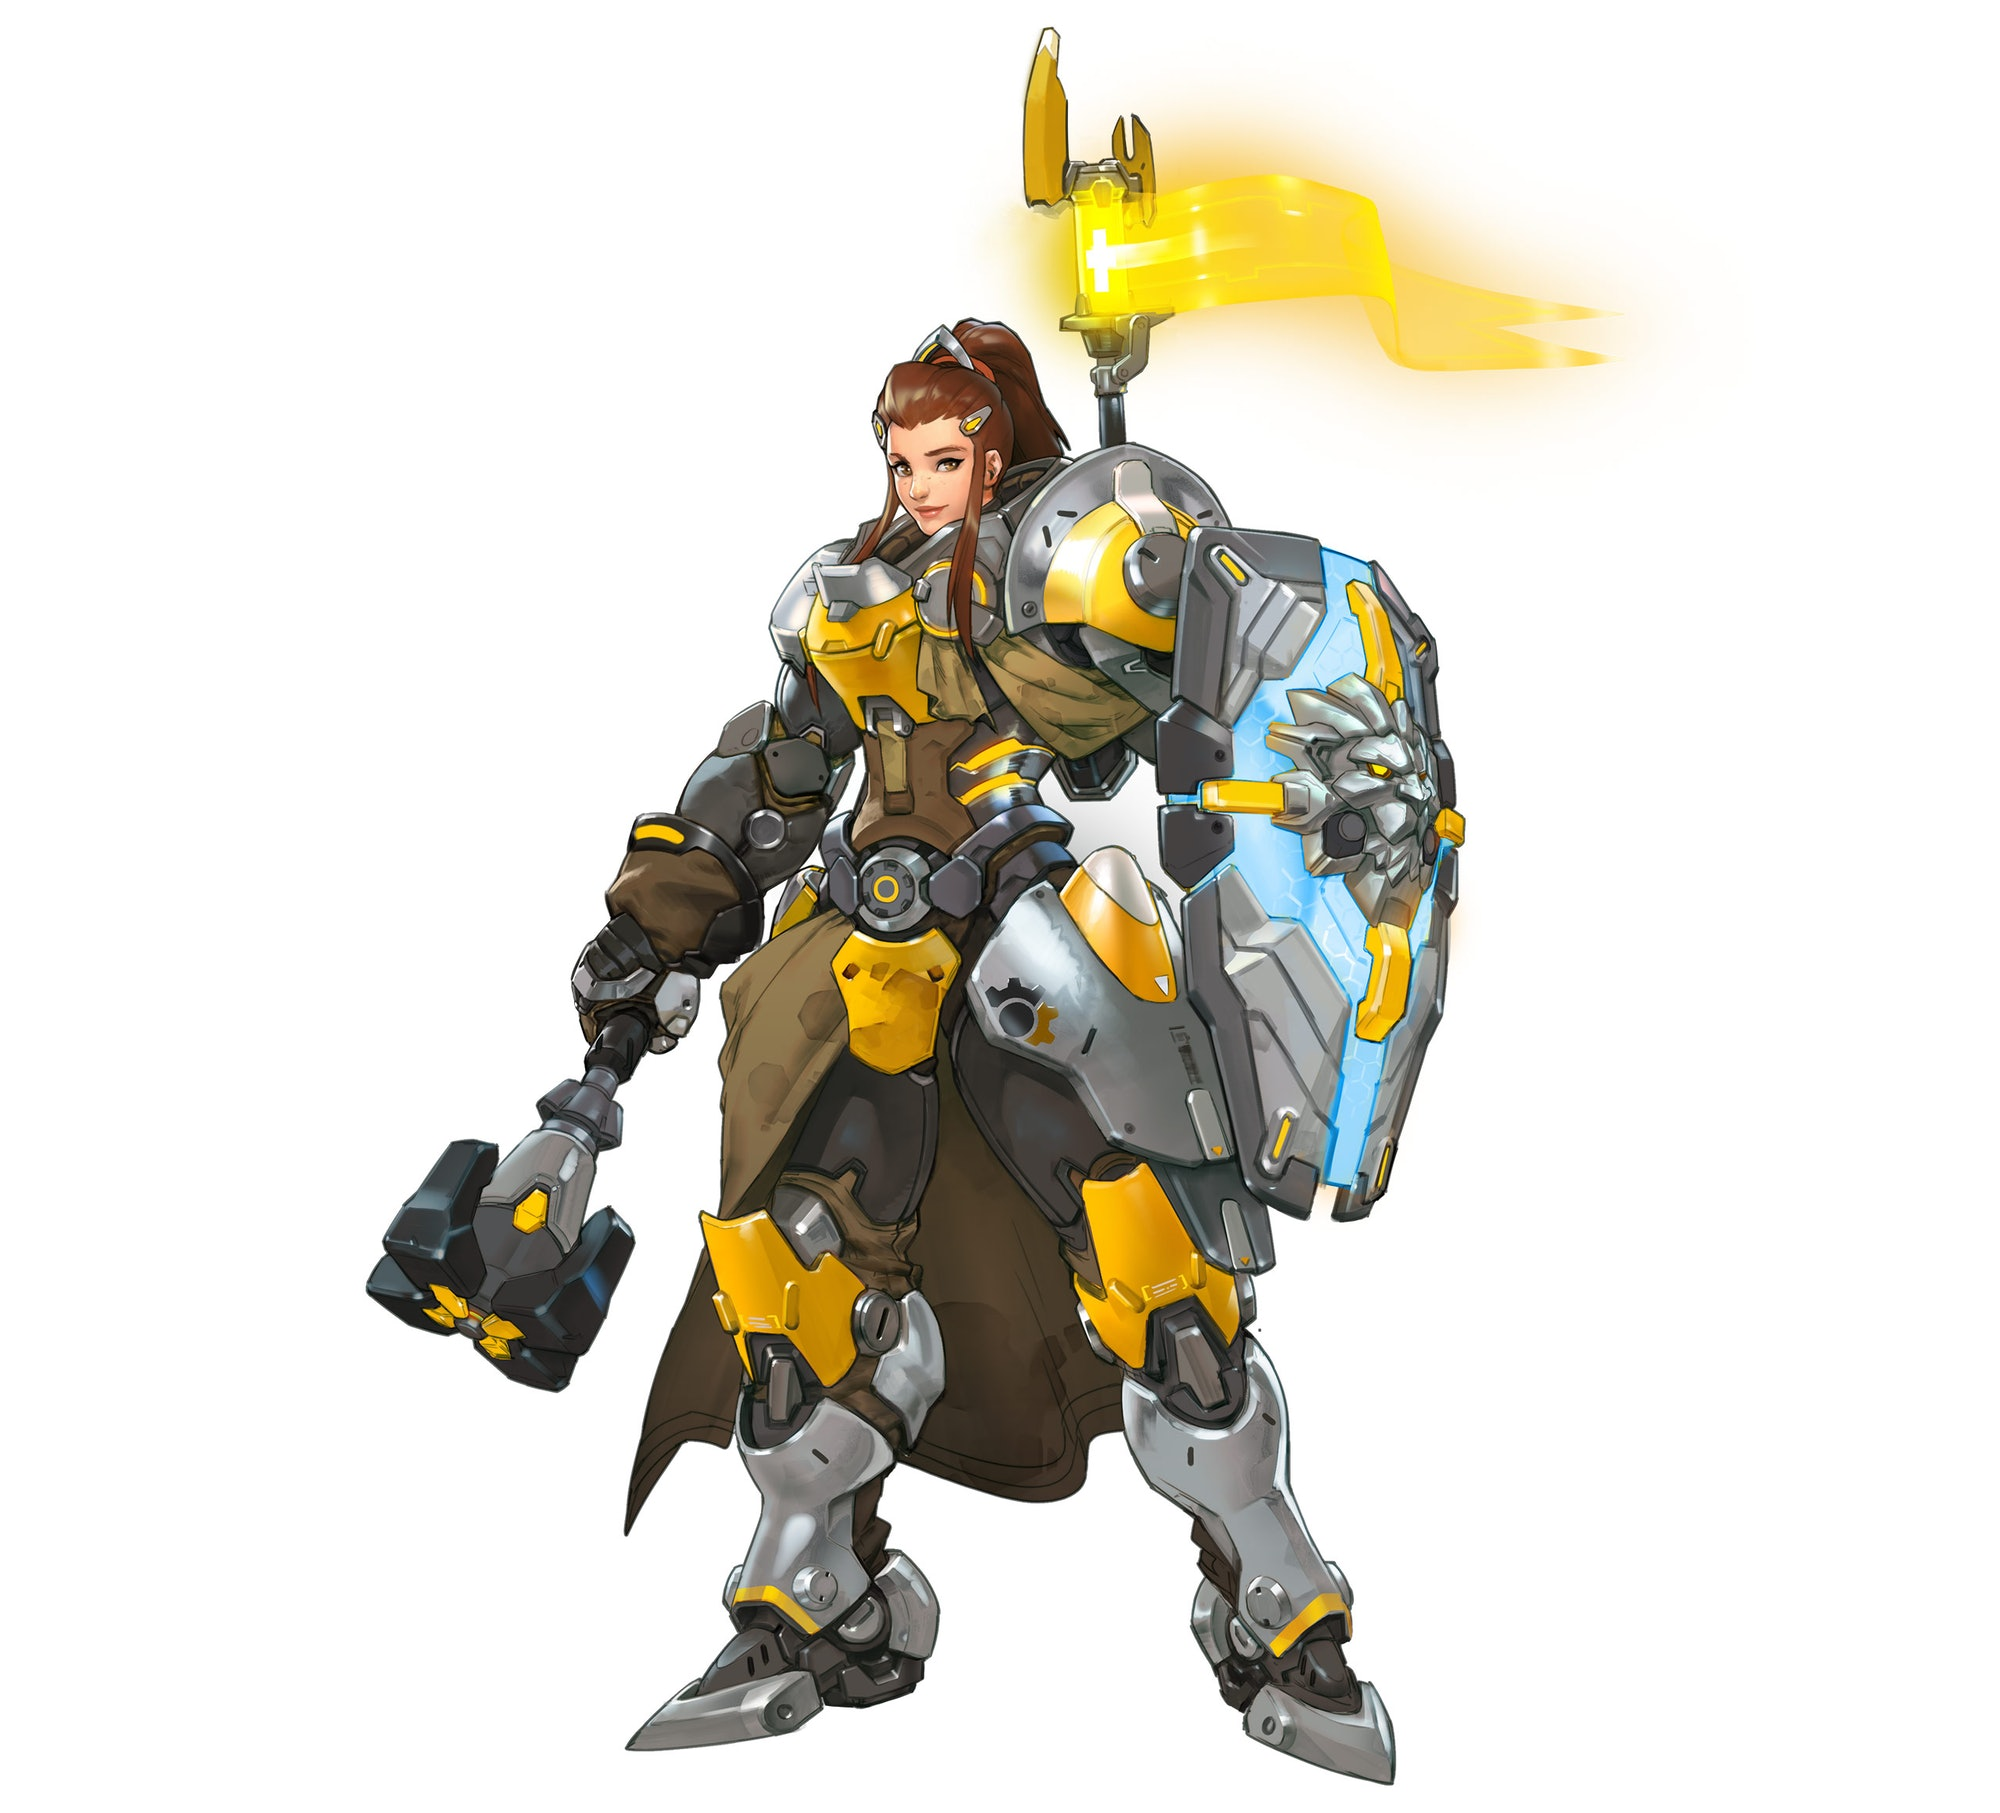 Brigitte is a kind of frontline brawler with Defense and Support perks.